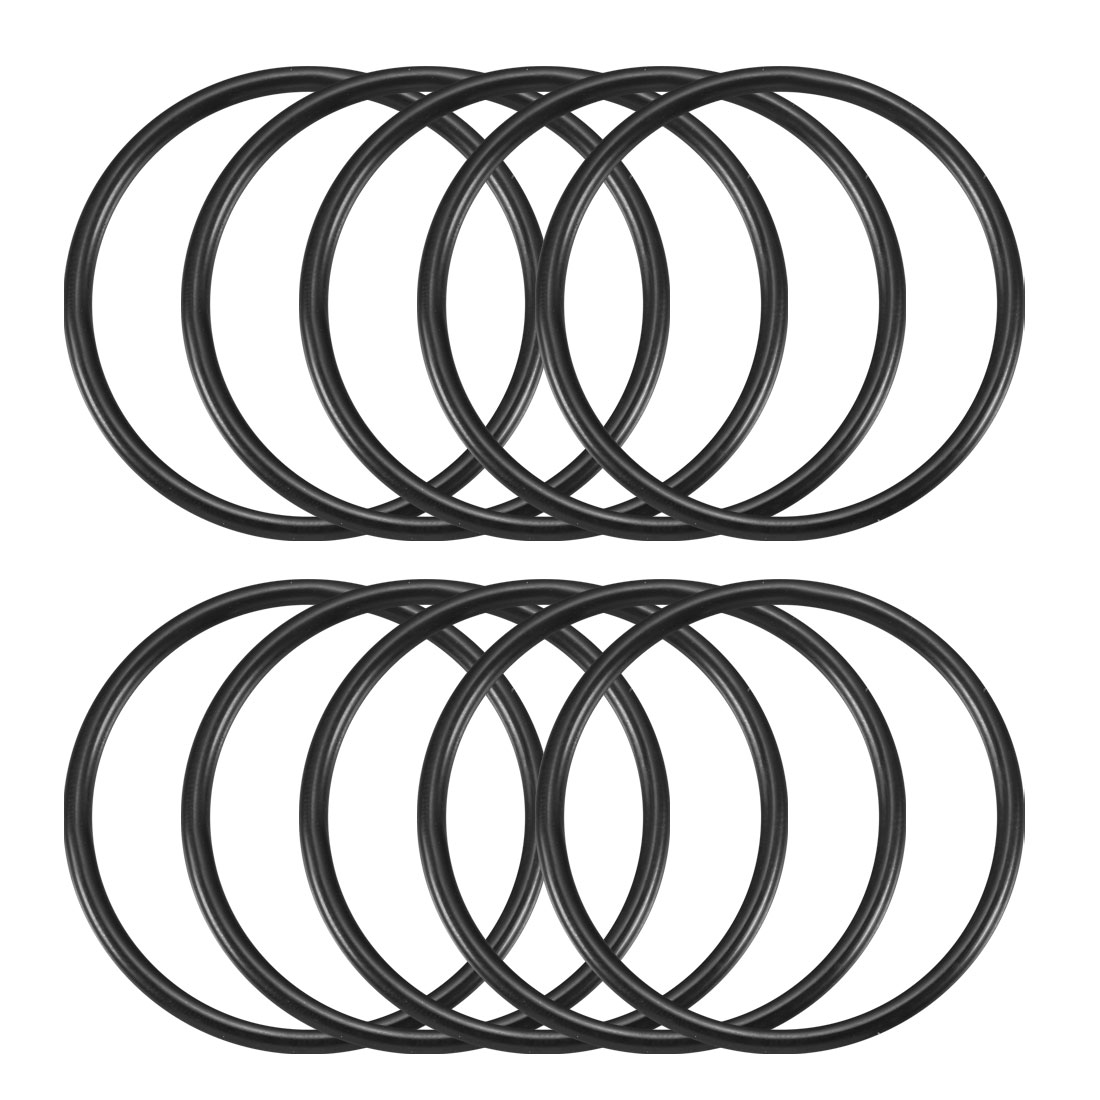 10 Pcs 50mm x 3mm Black Flexible O-Shaped O Rings Washers Gaskets Grommets Rubber Sealing Oil Filter